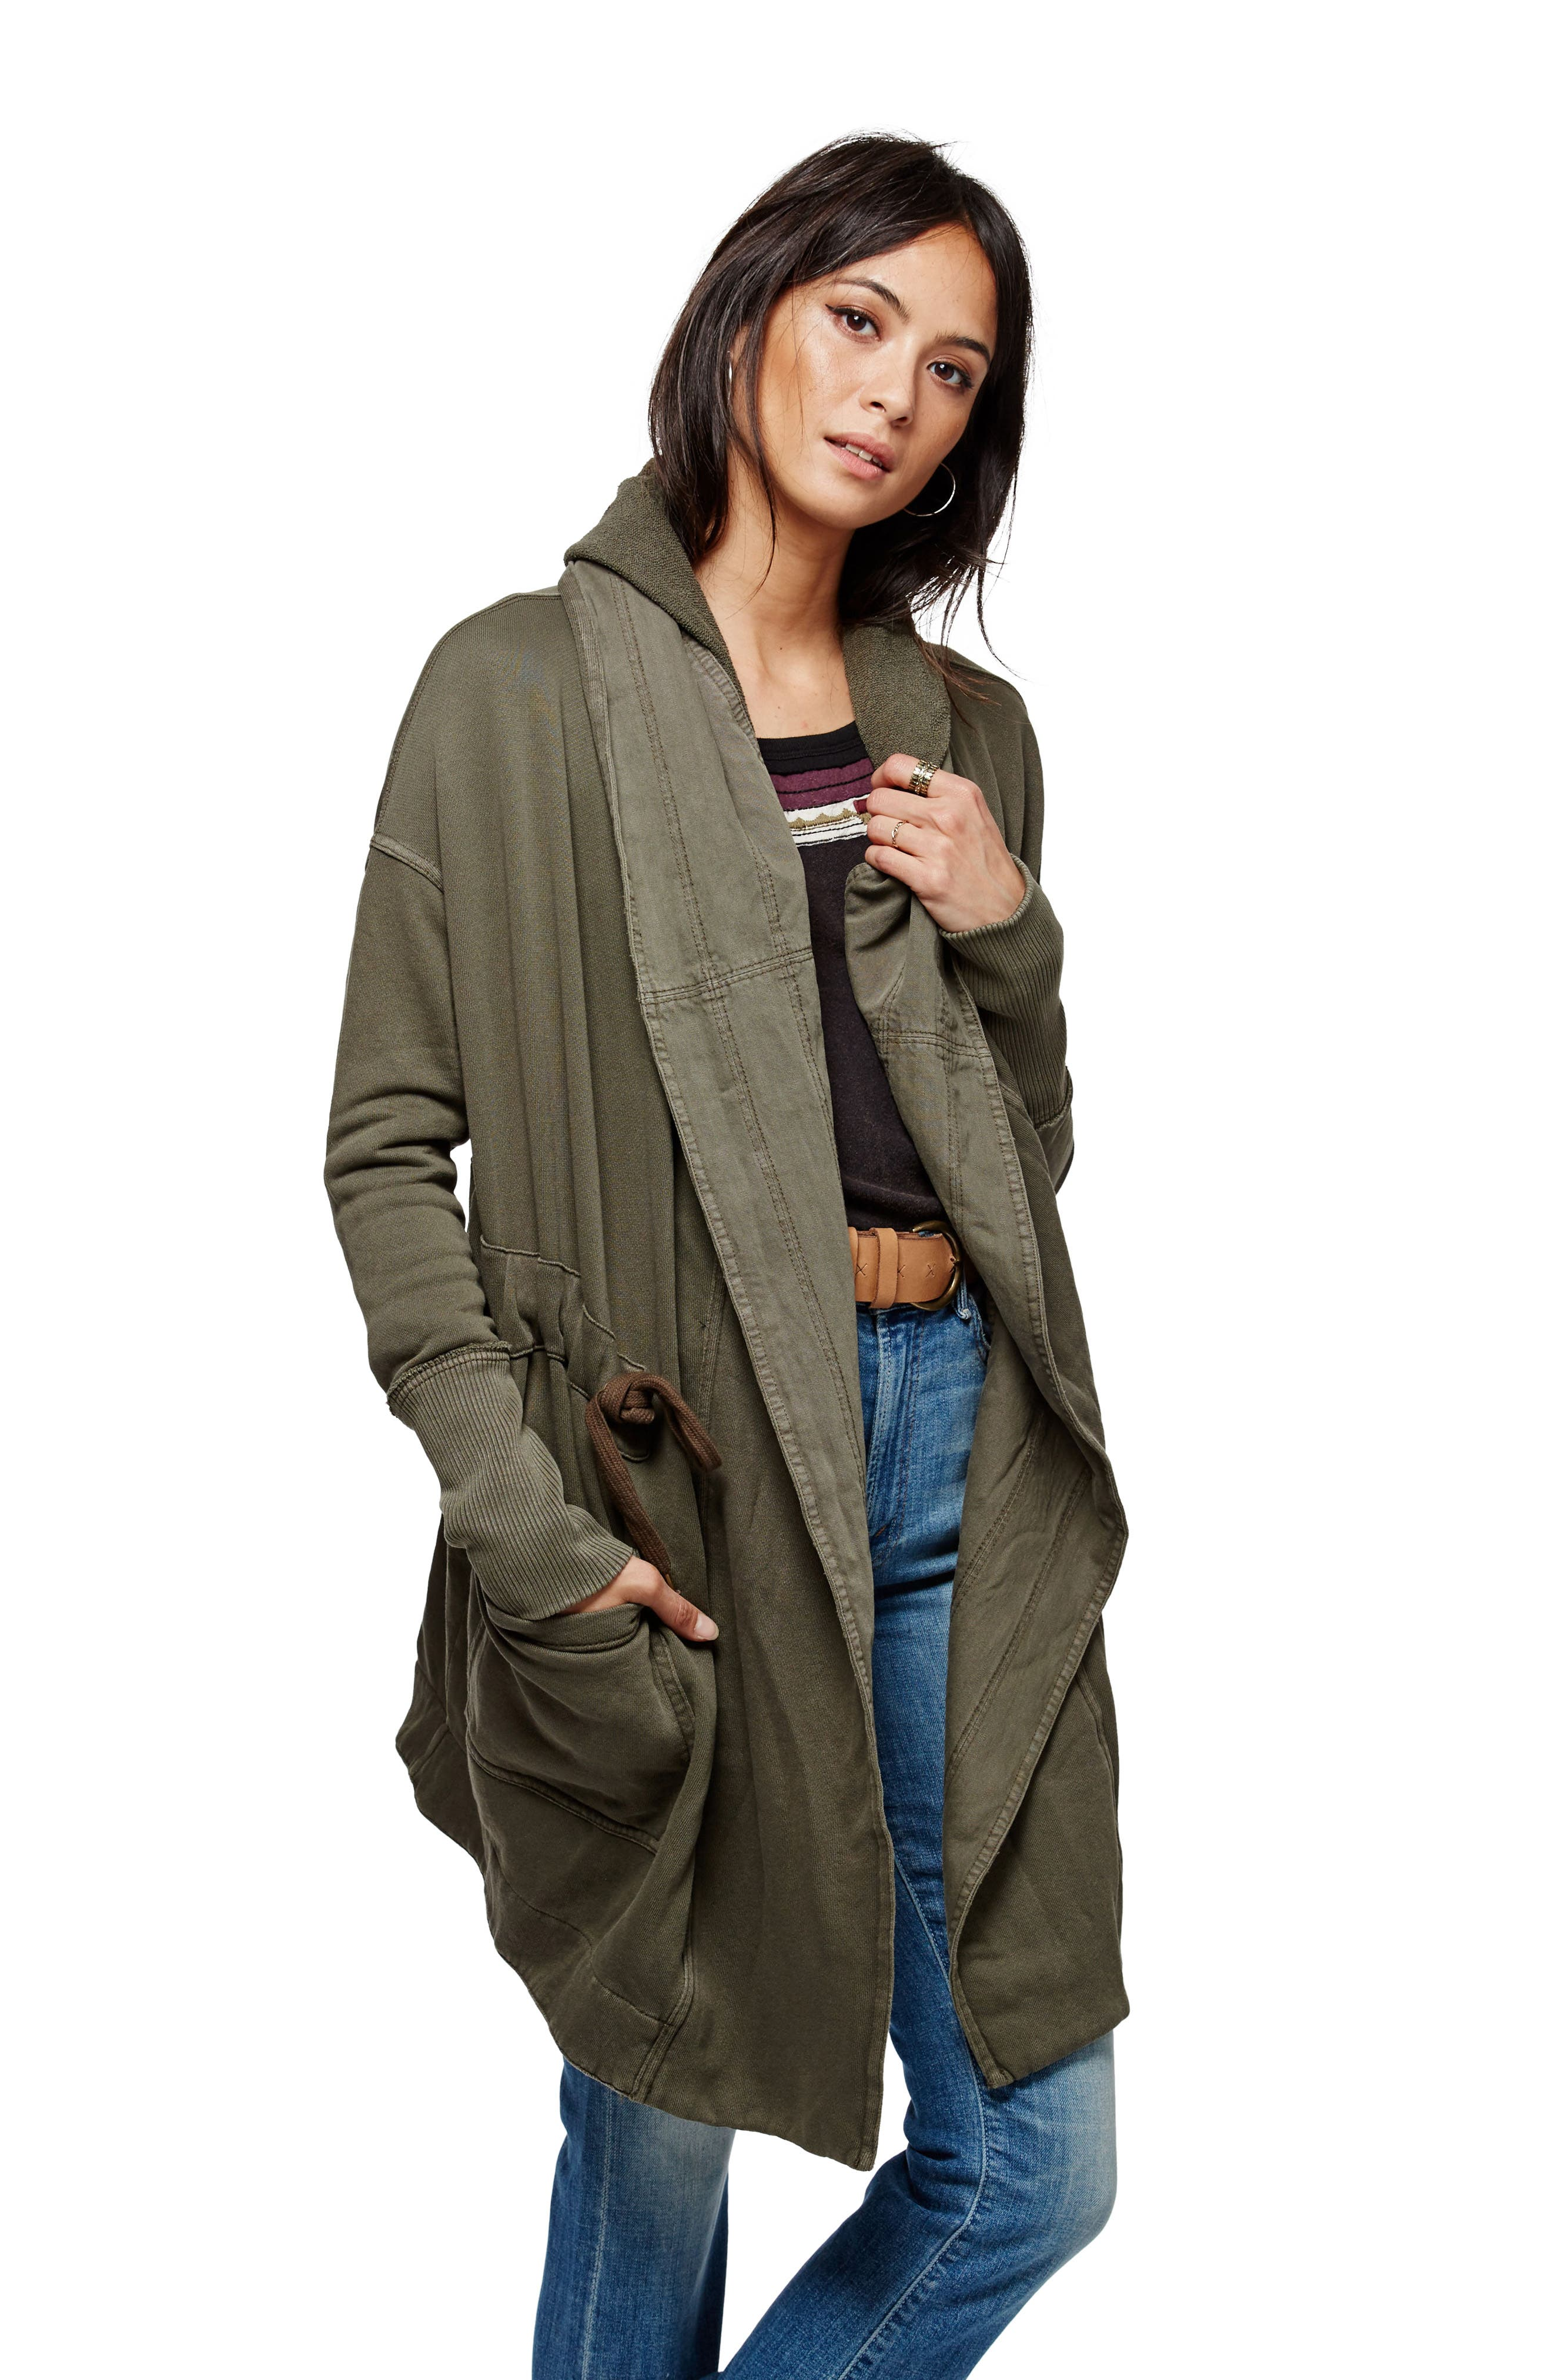 Brentwood Cotton Cardigan,                             Main thumbnail 1, color,                             350